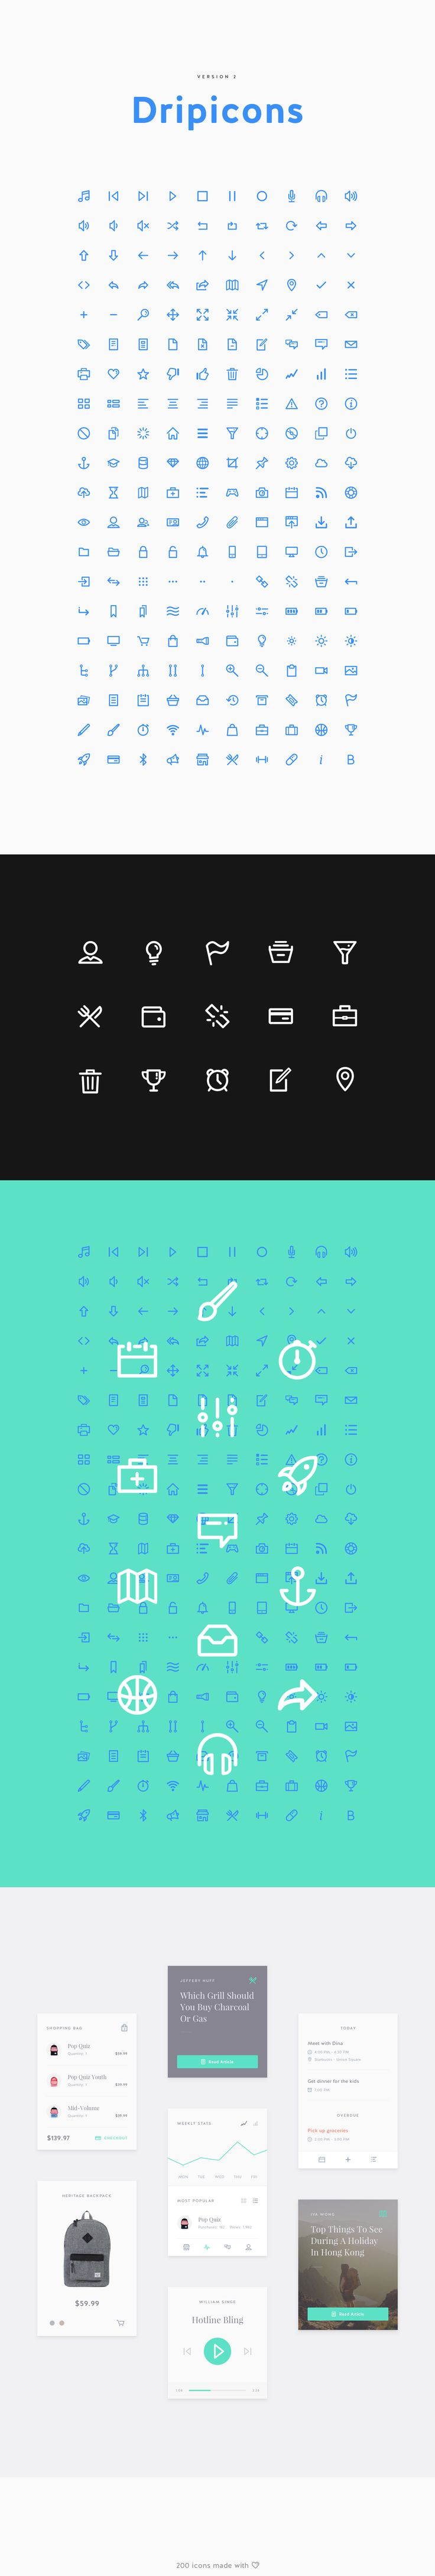 "The long awaited update to my first released iconset entitled ""Dripicons'. It is now version 2.0 which comes with a lot more icons to play with and overall refinement of all the current icons. I'm not an icon designer however, I made these icons with the …"